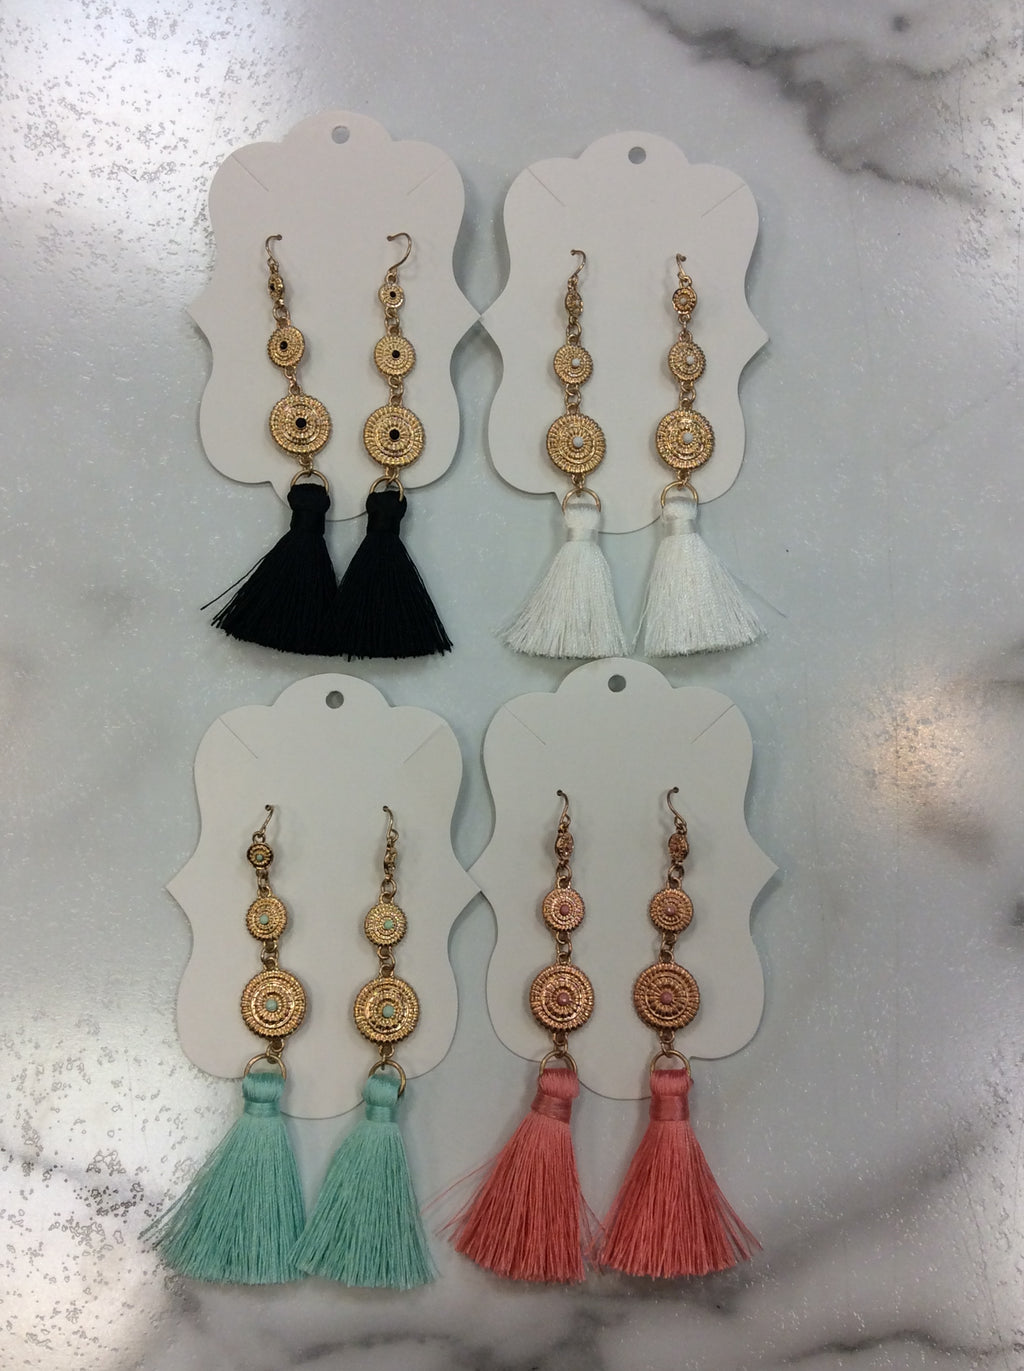 3 Round Metal Dangling with Tassel Bohemian Earrings